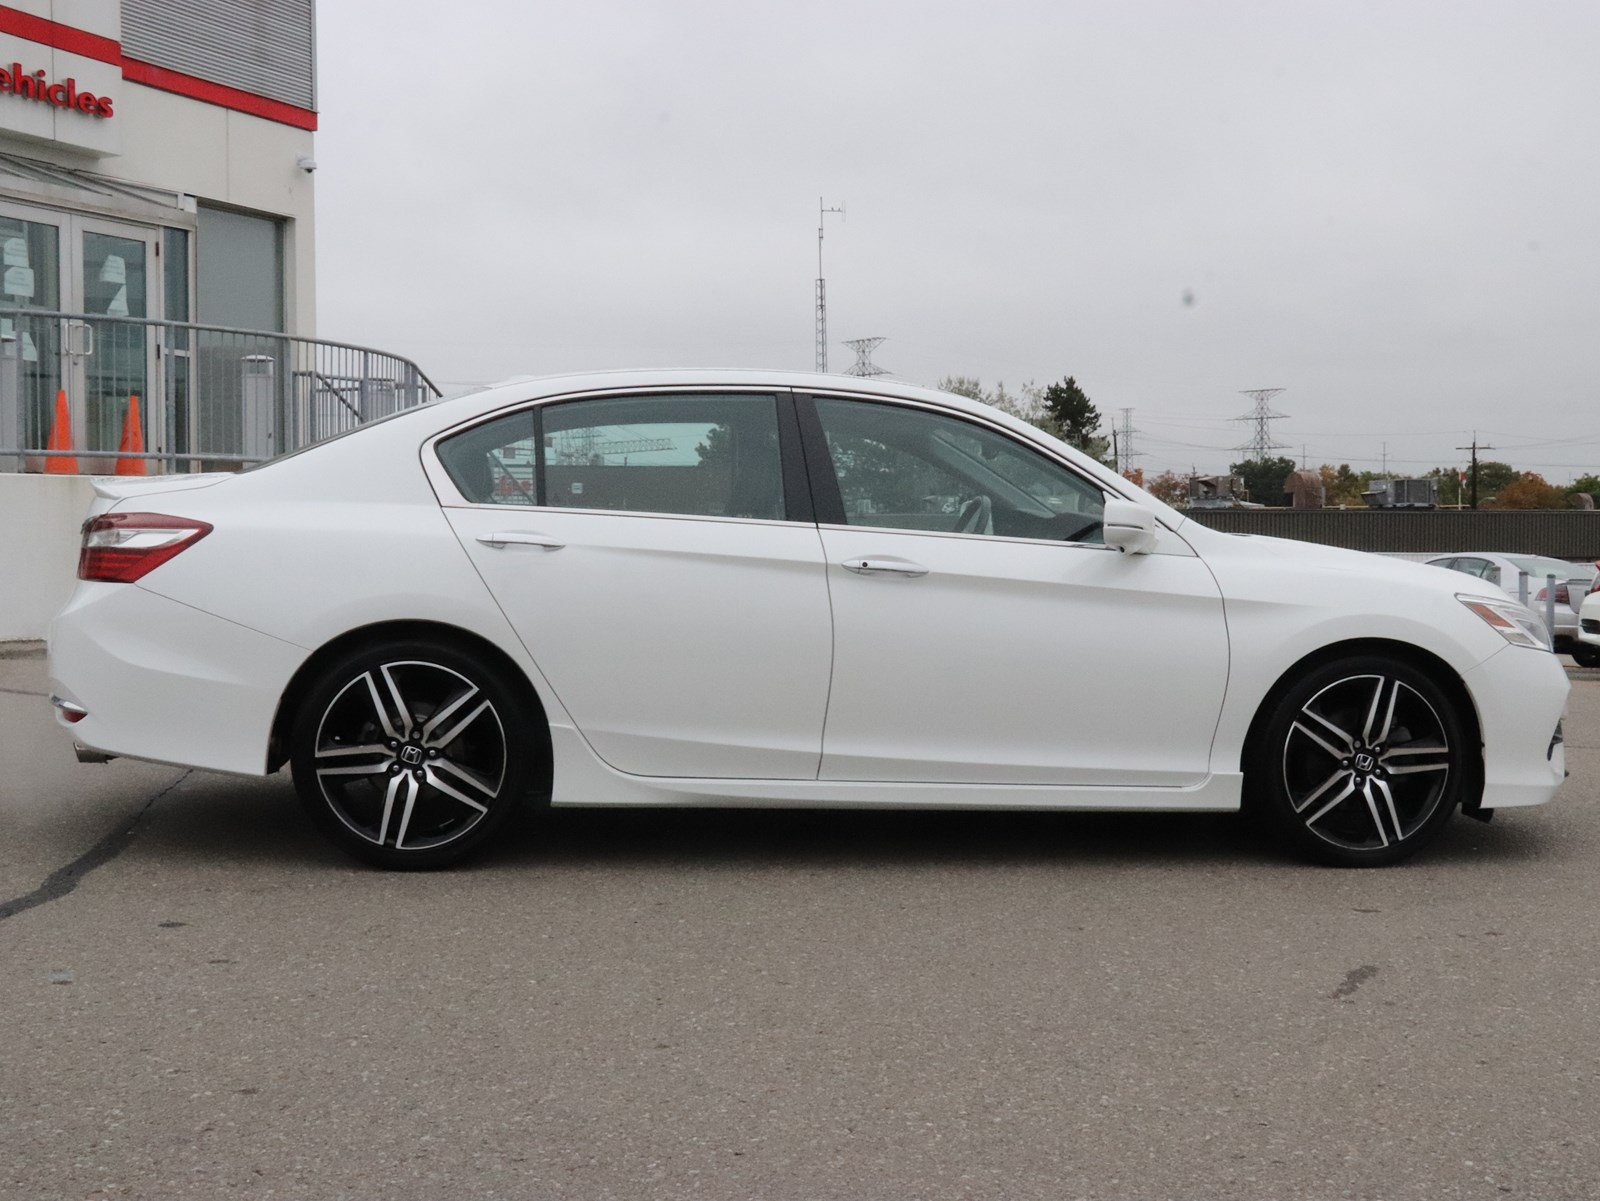 Certified Pre Owned 2017 Honda Accord Sedan Touring 4dr Car in